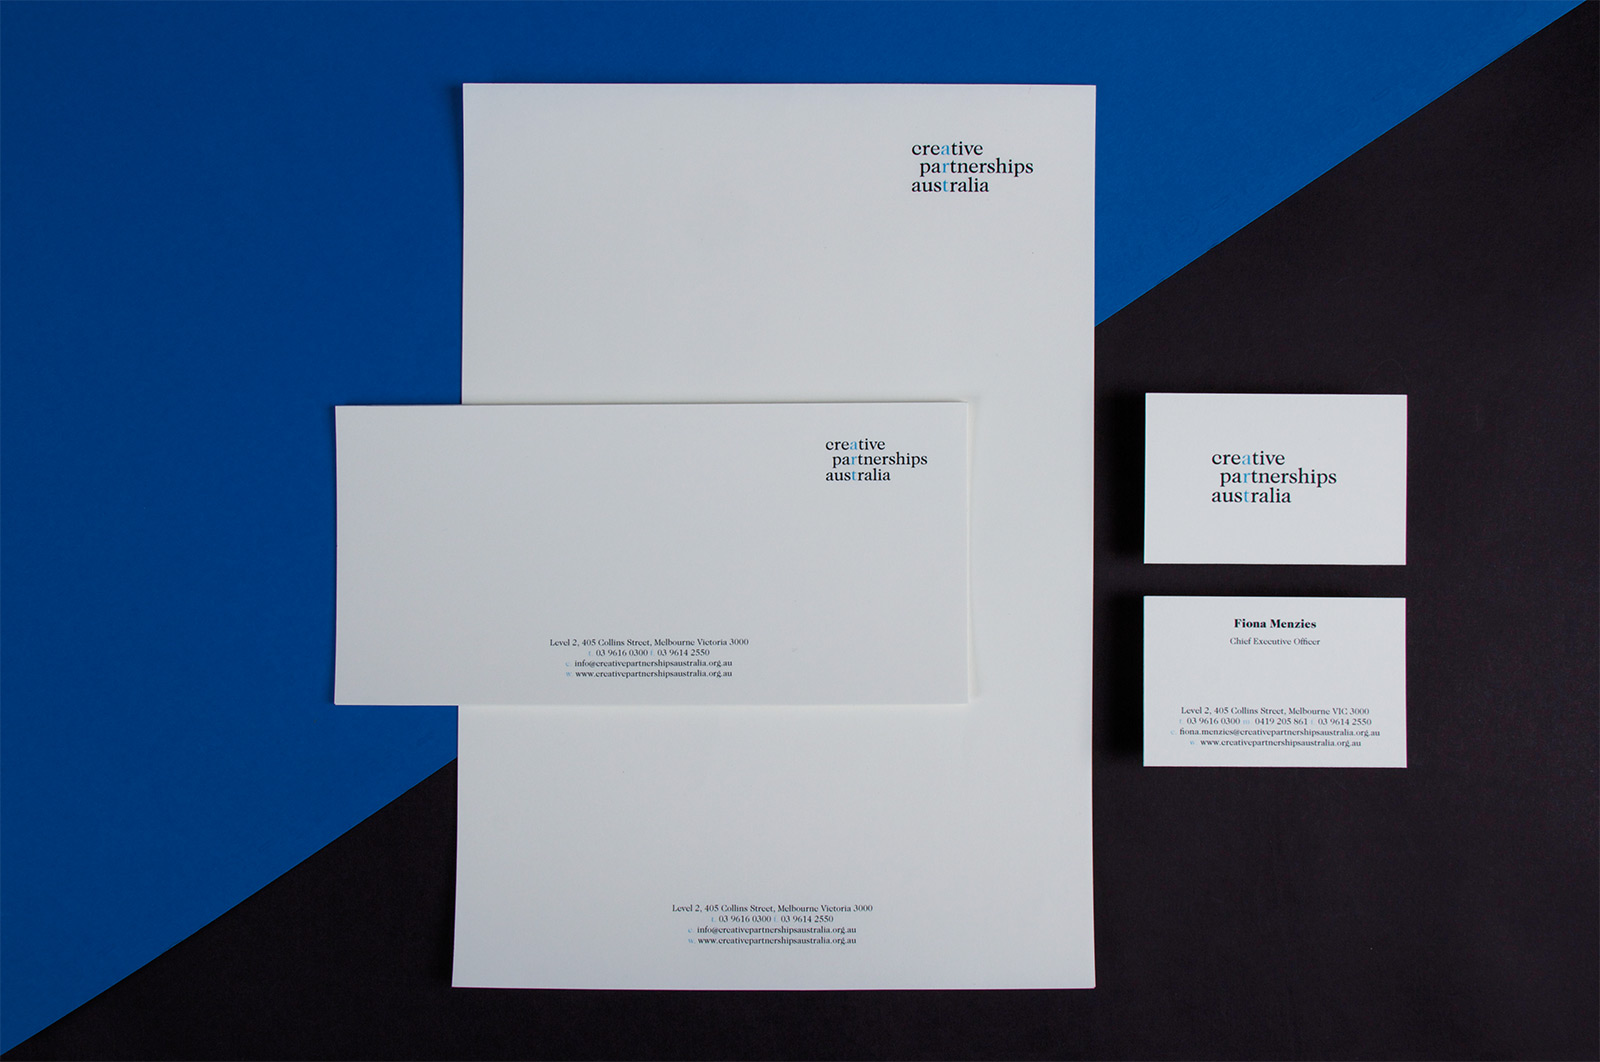 creative_partnerships_australia_stationery_02782.jpg